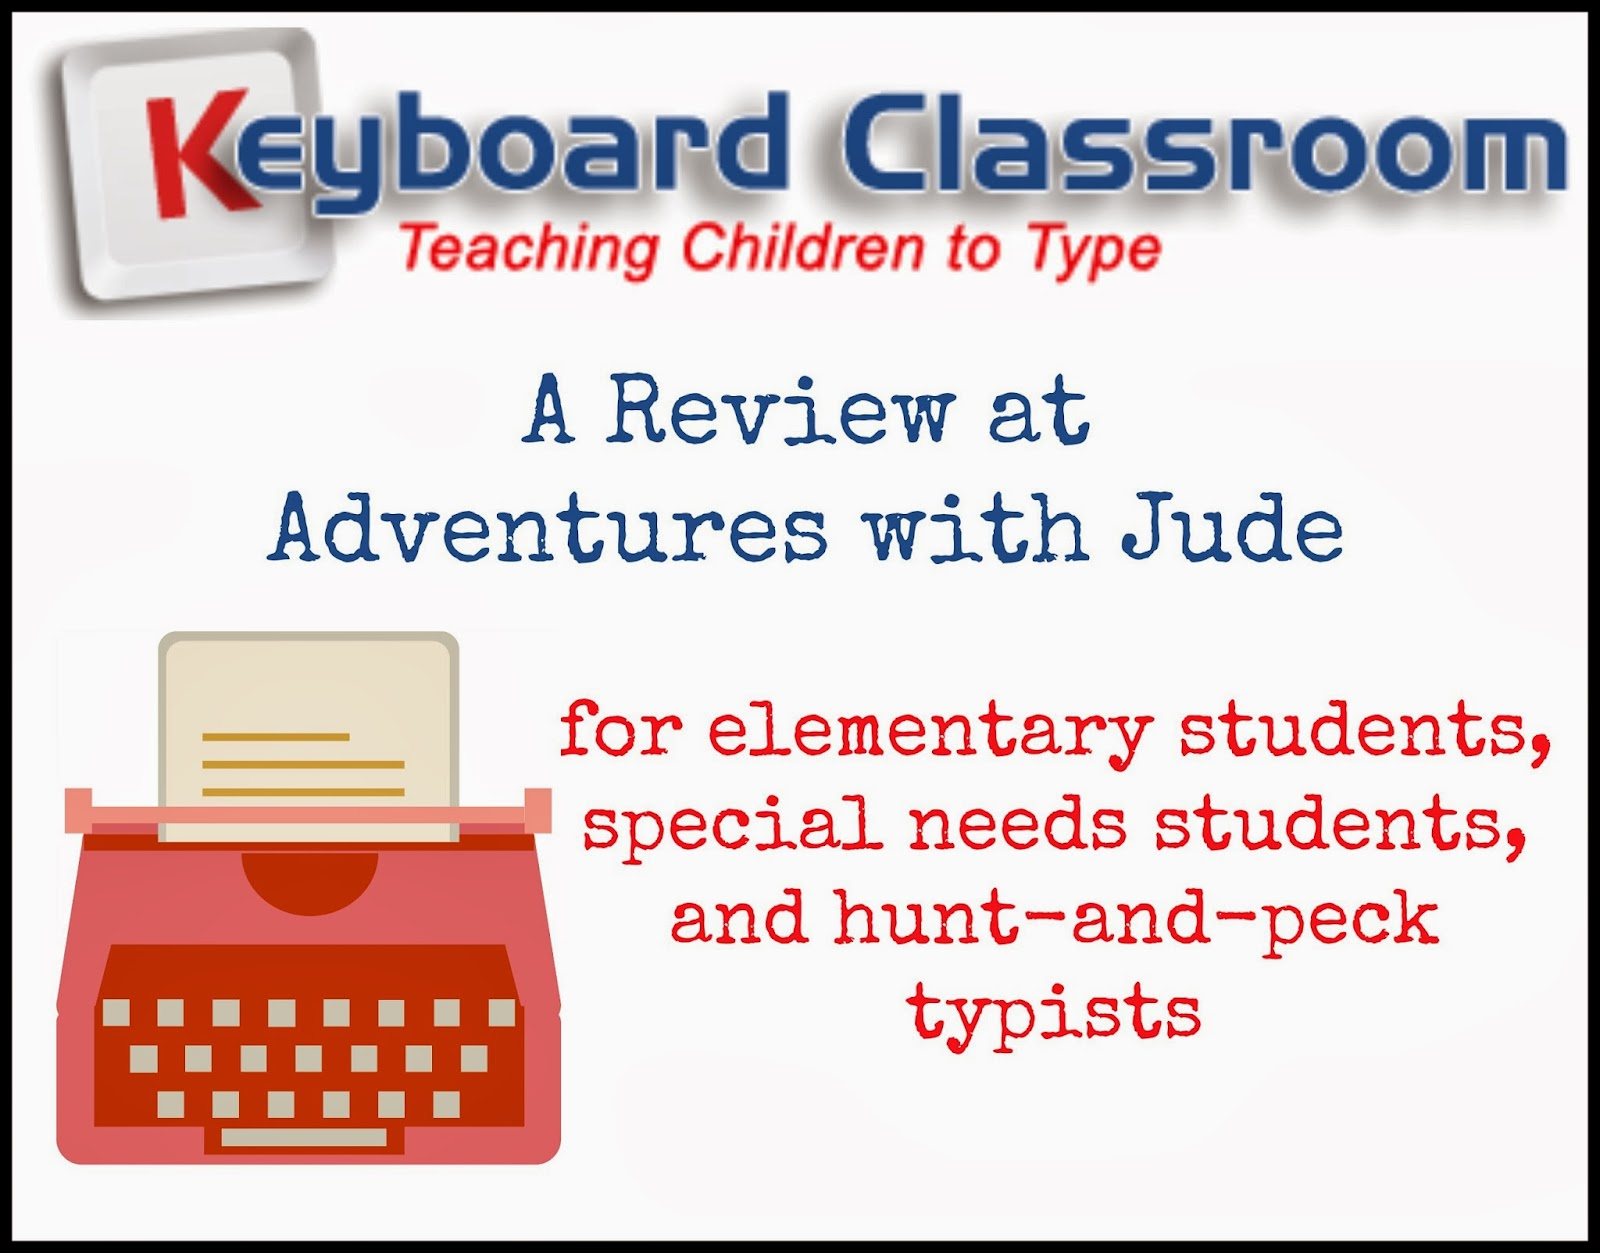 Keyboard Classroom - for elementary, special needs, and hunt-peck typists